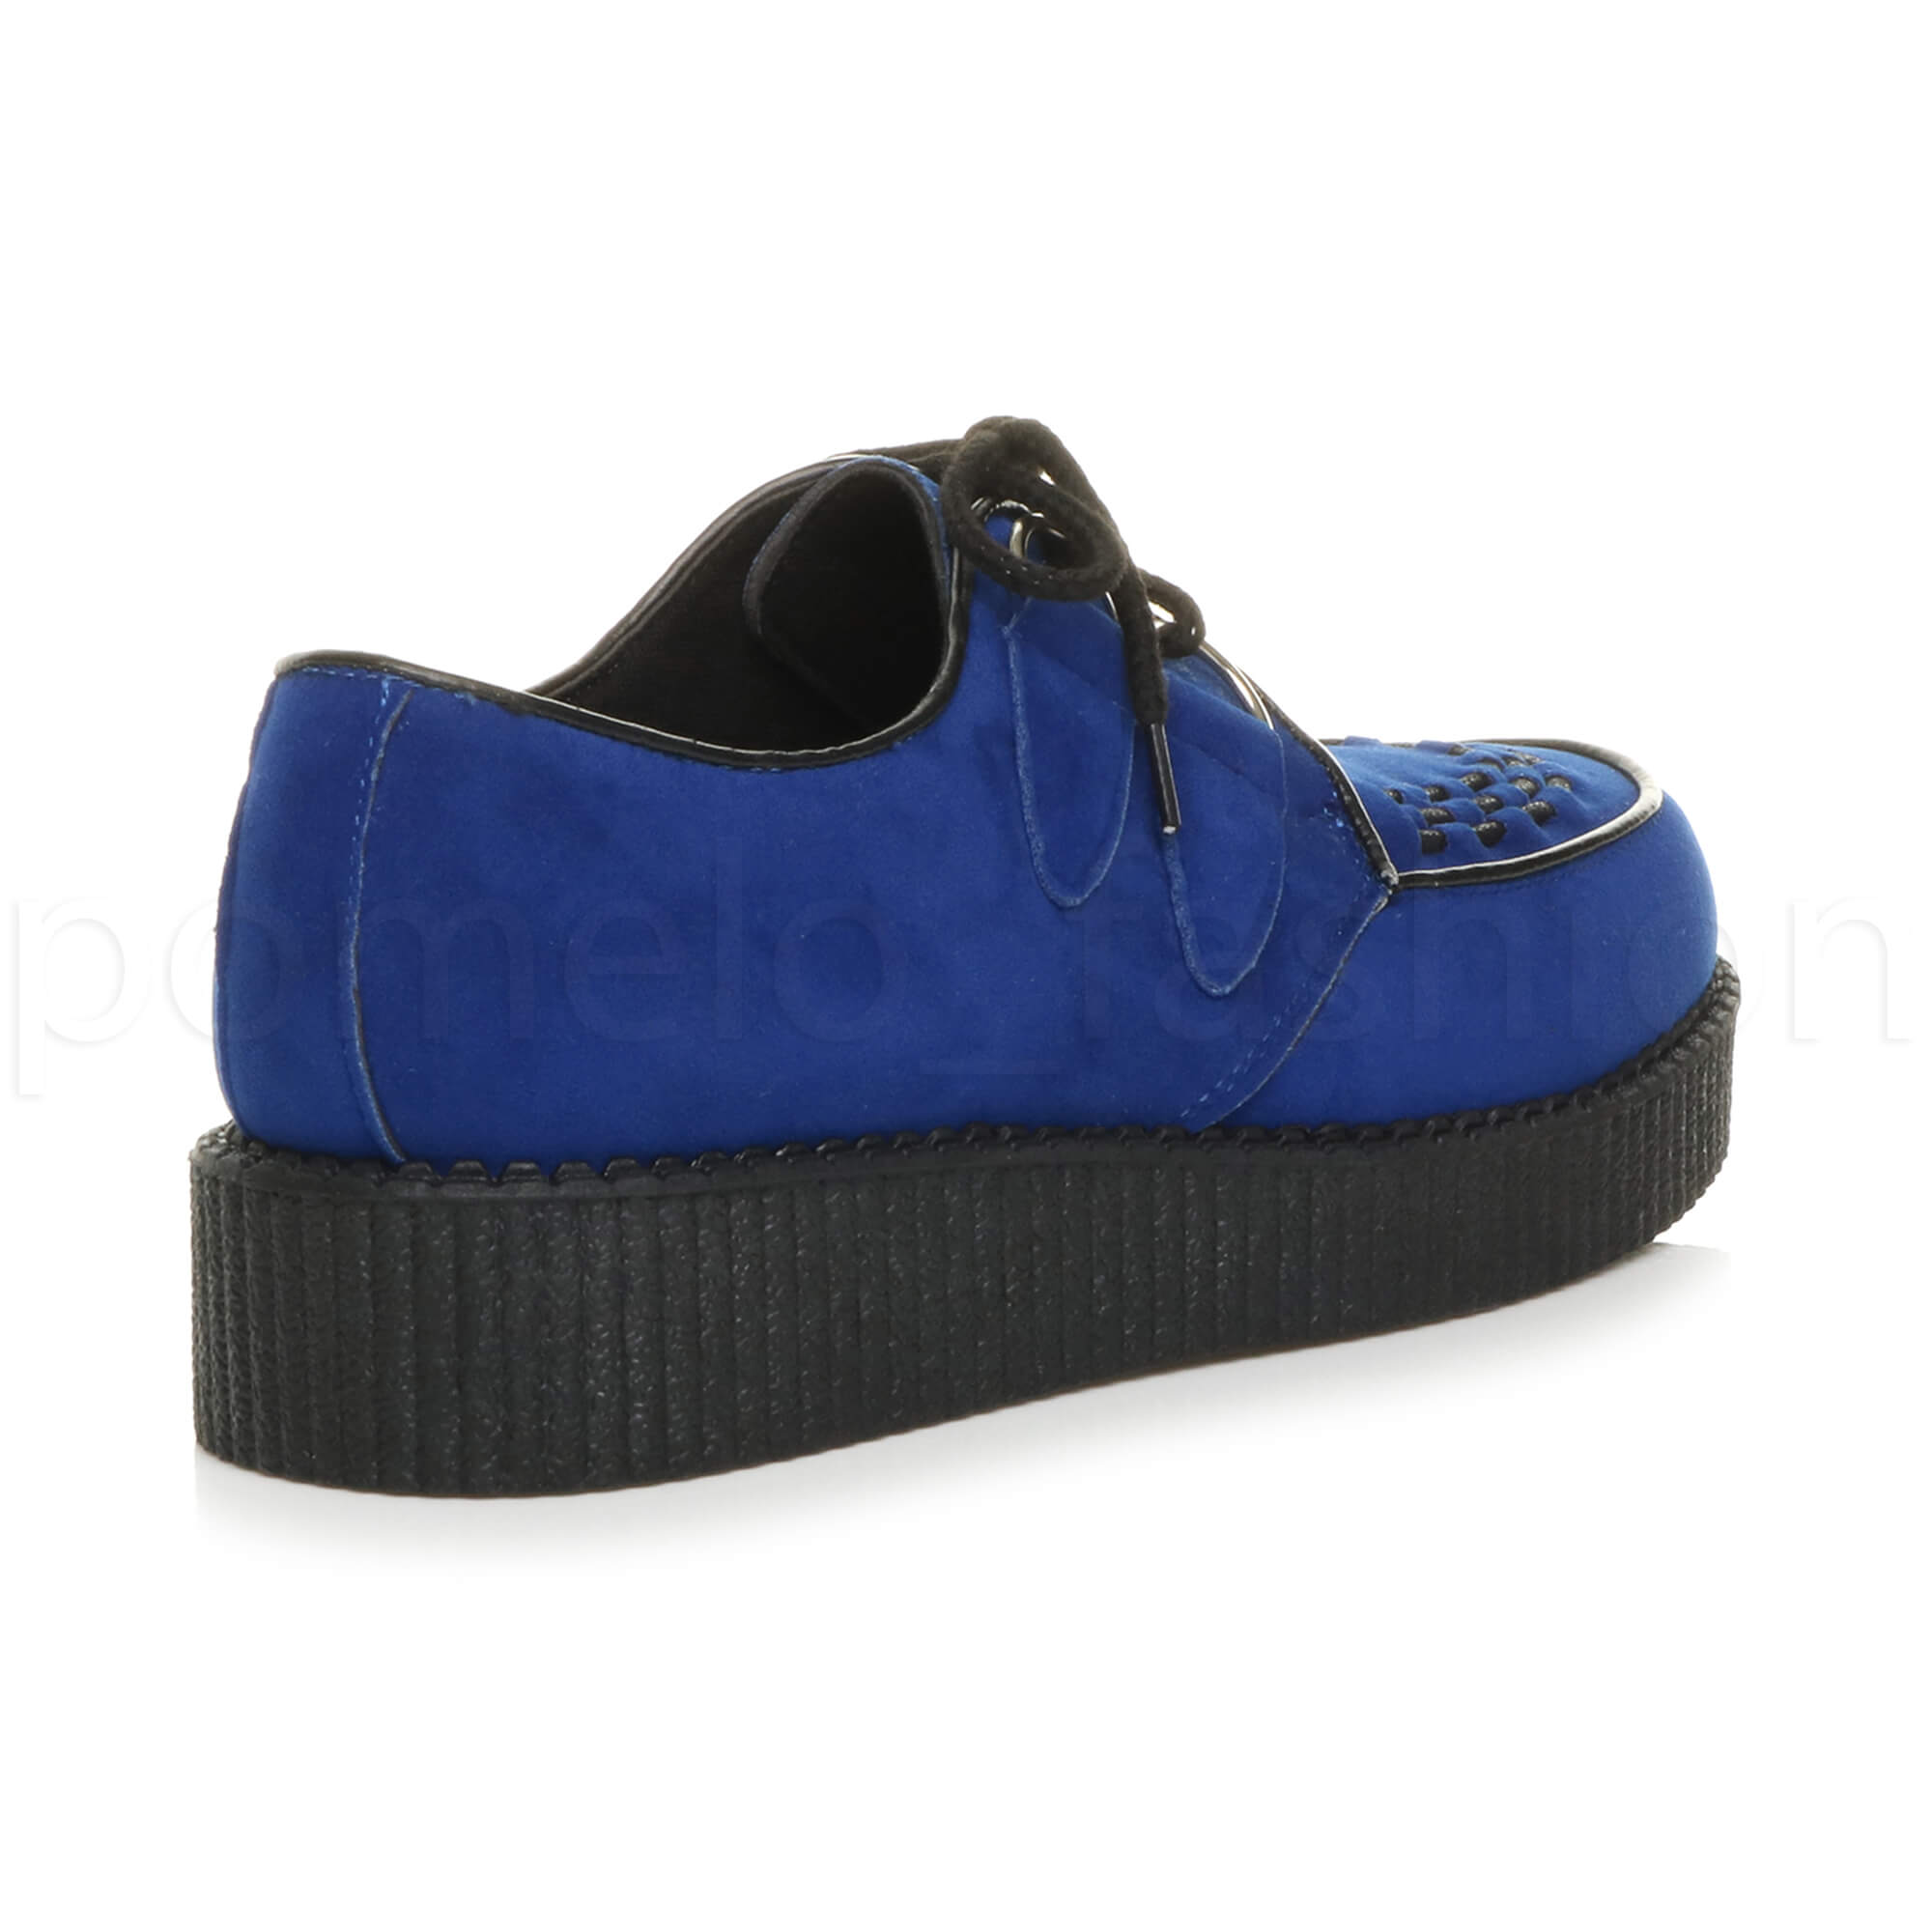 75812ff5b6d MENS GOTH PUNK ROCKABILLY BROTHEL CREEPERS VINTAGE WEDGE PLATFORM ...